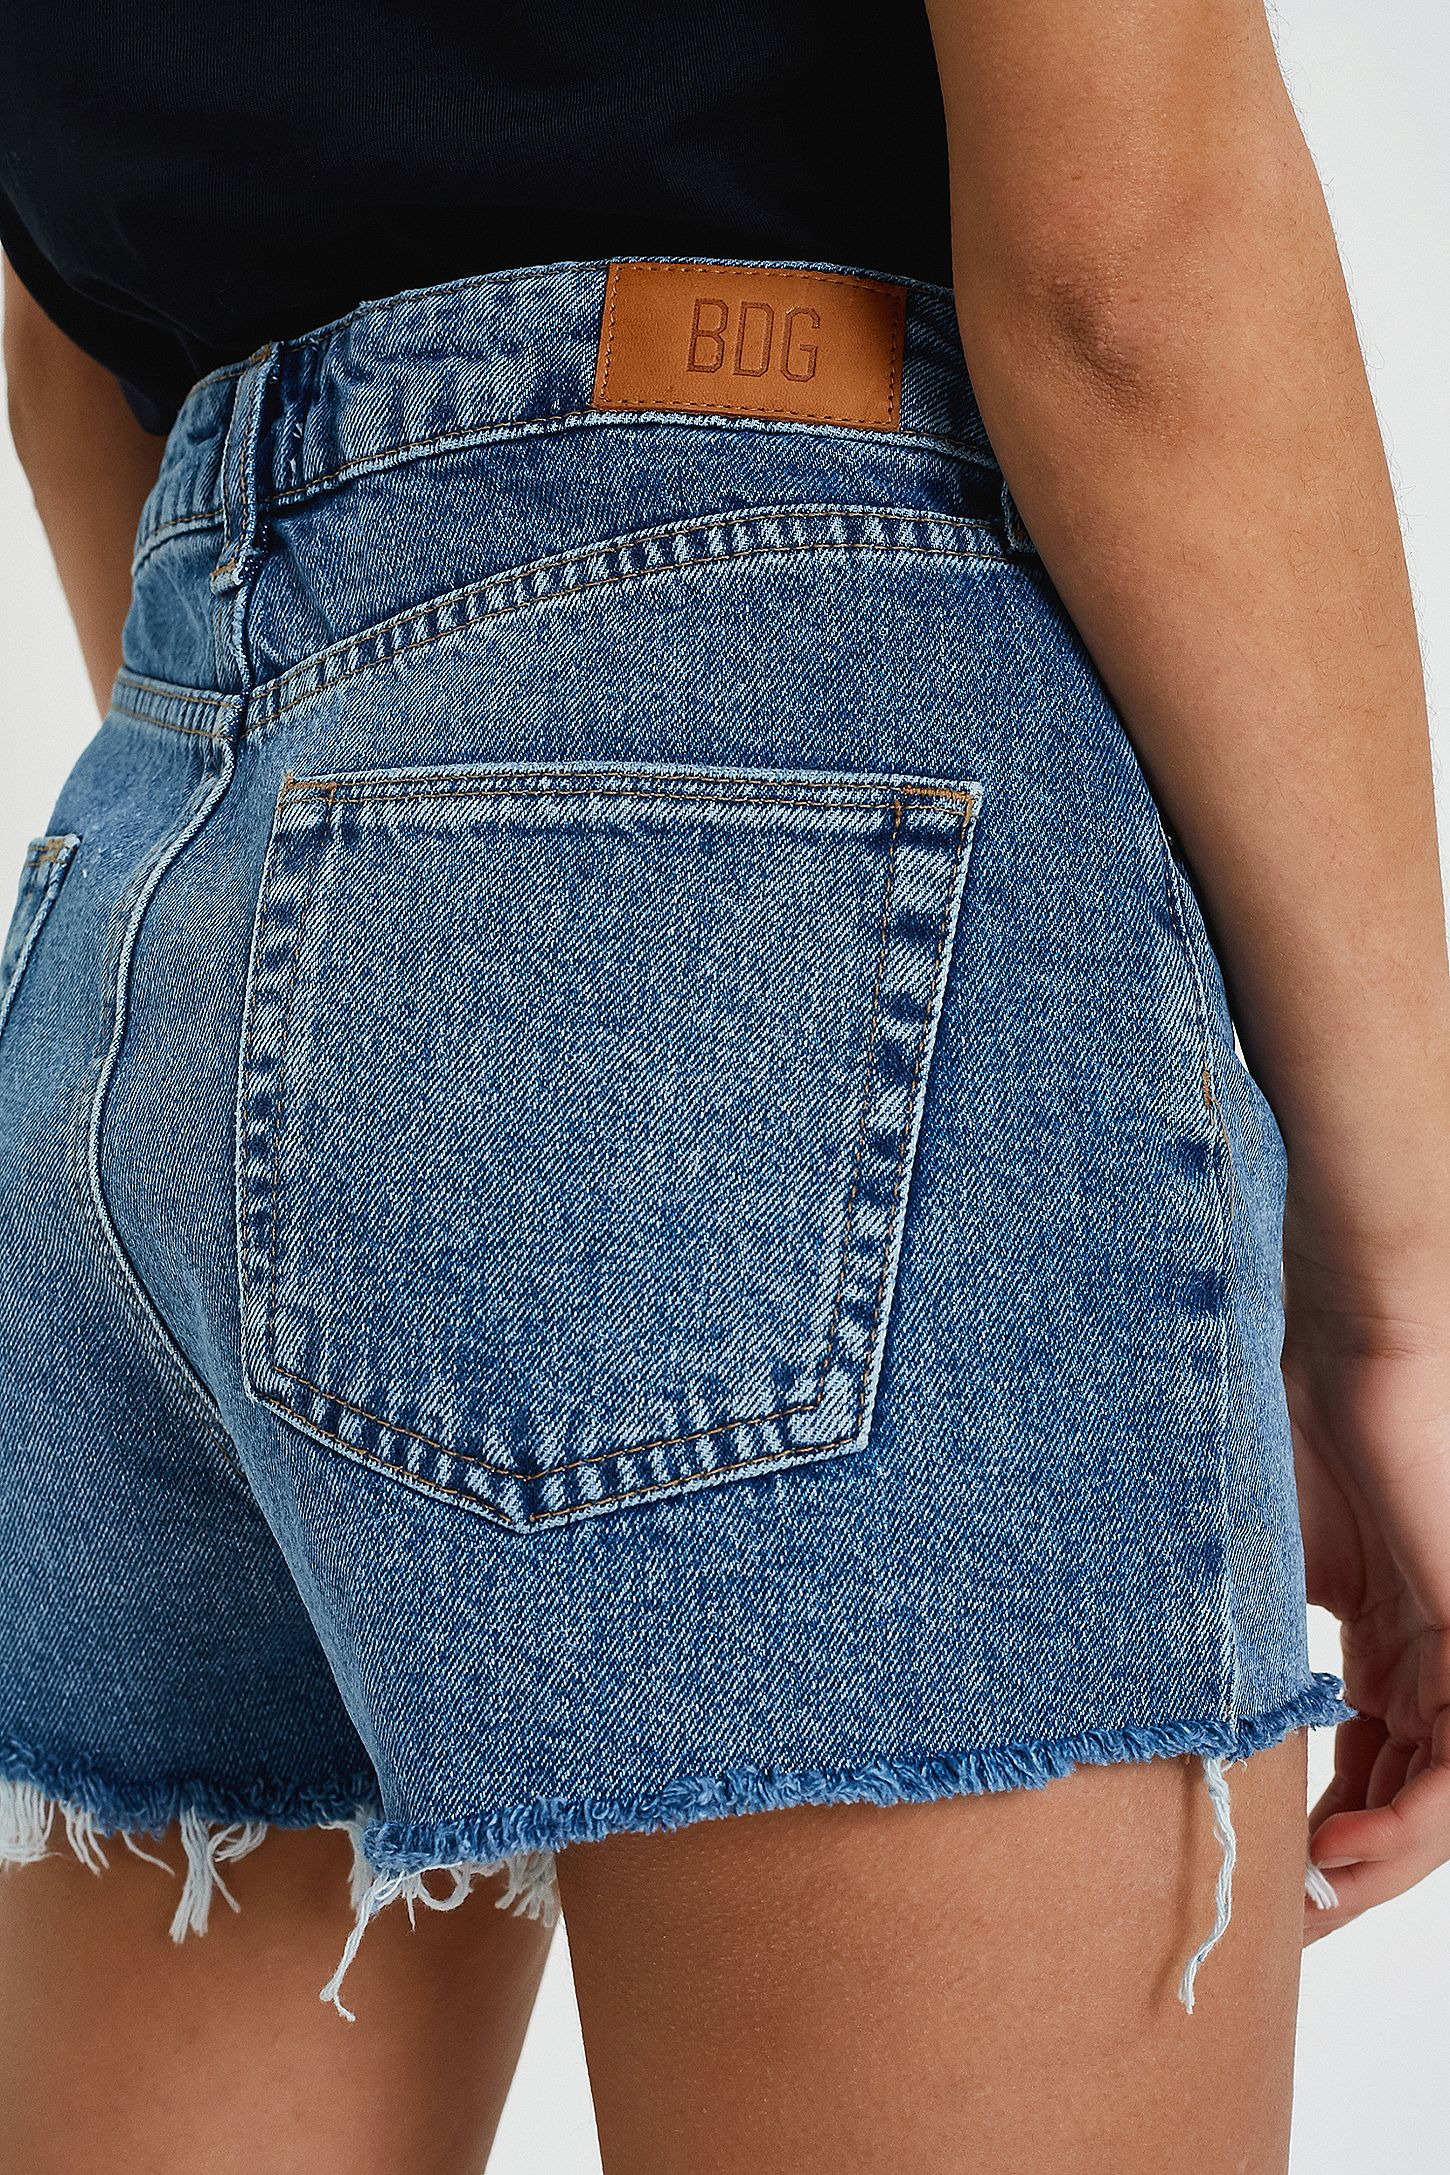 BDG – Vintage-Mom-Jeansshorts in Blau | Urban Outfitters